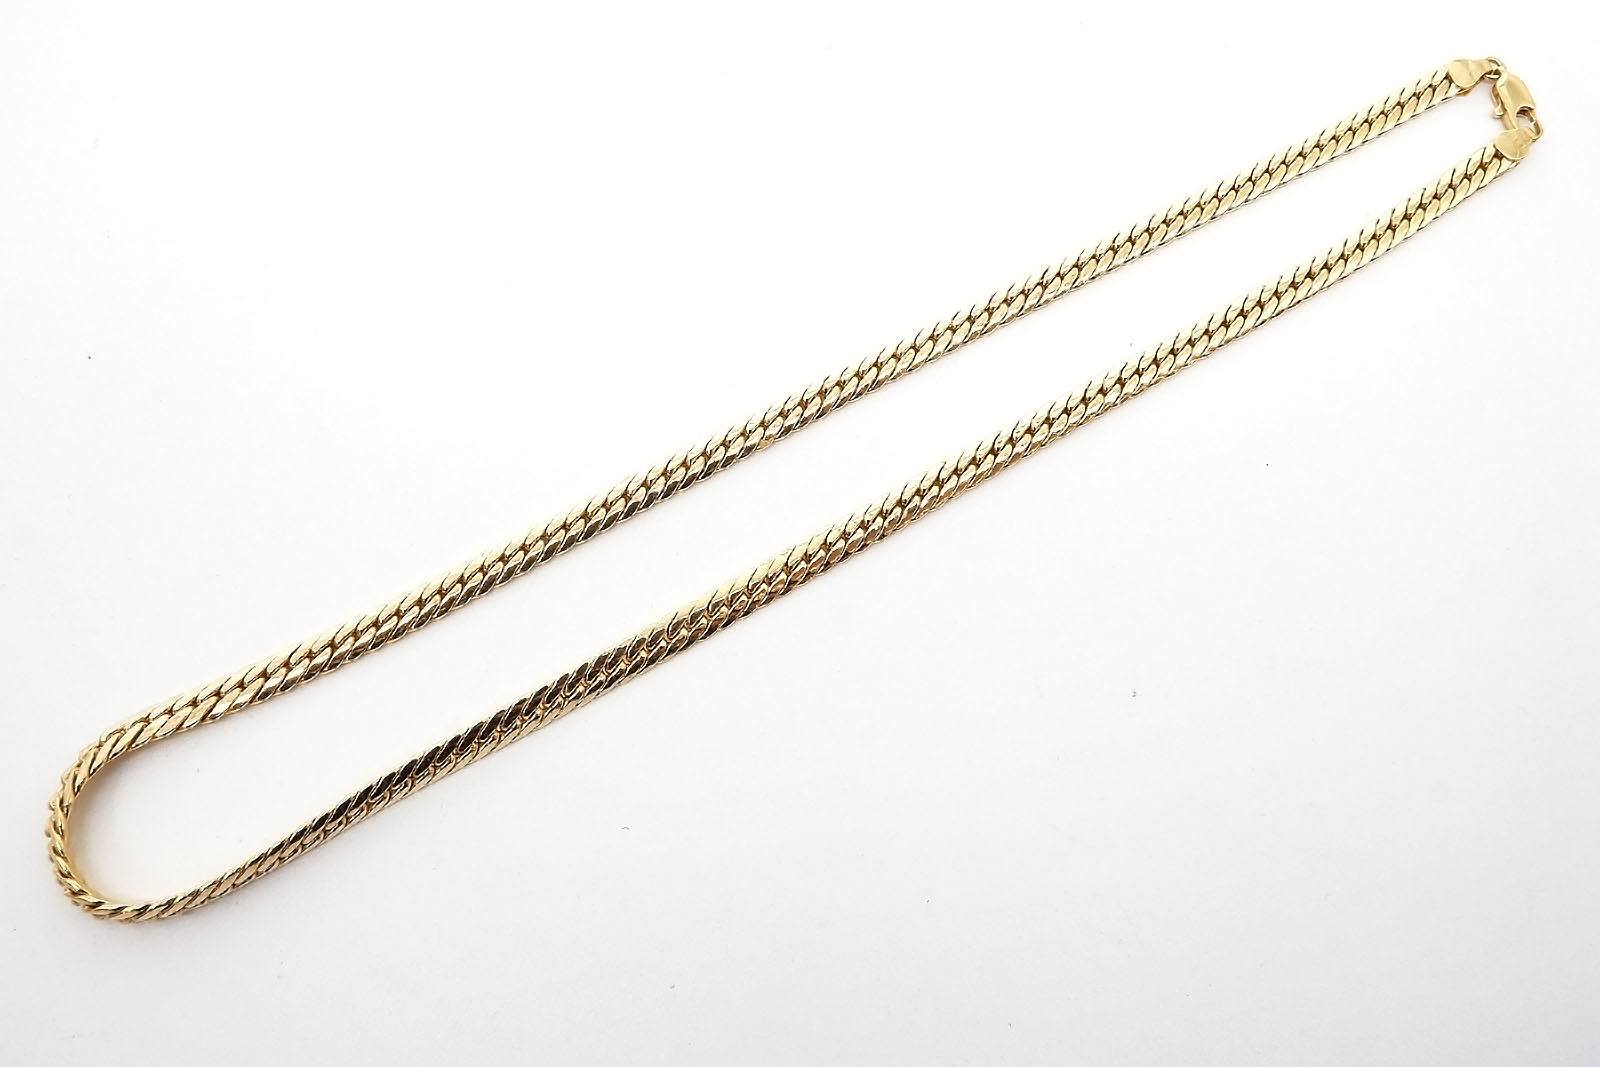 '9ct Yellow Gold Hollow File Curb Link Chain, 13.25g'